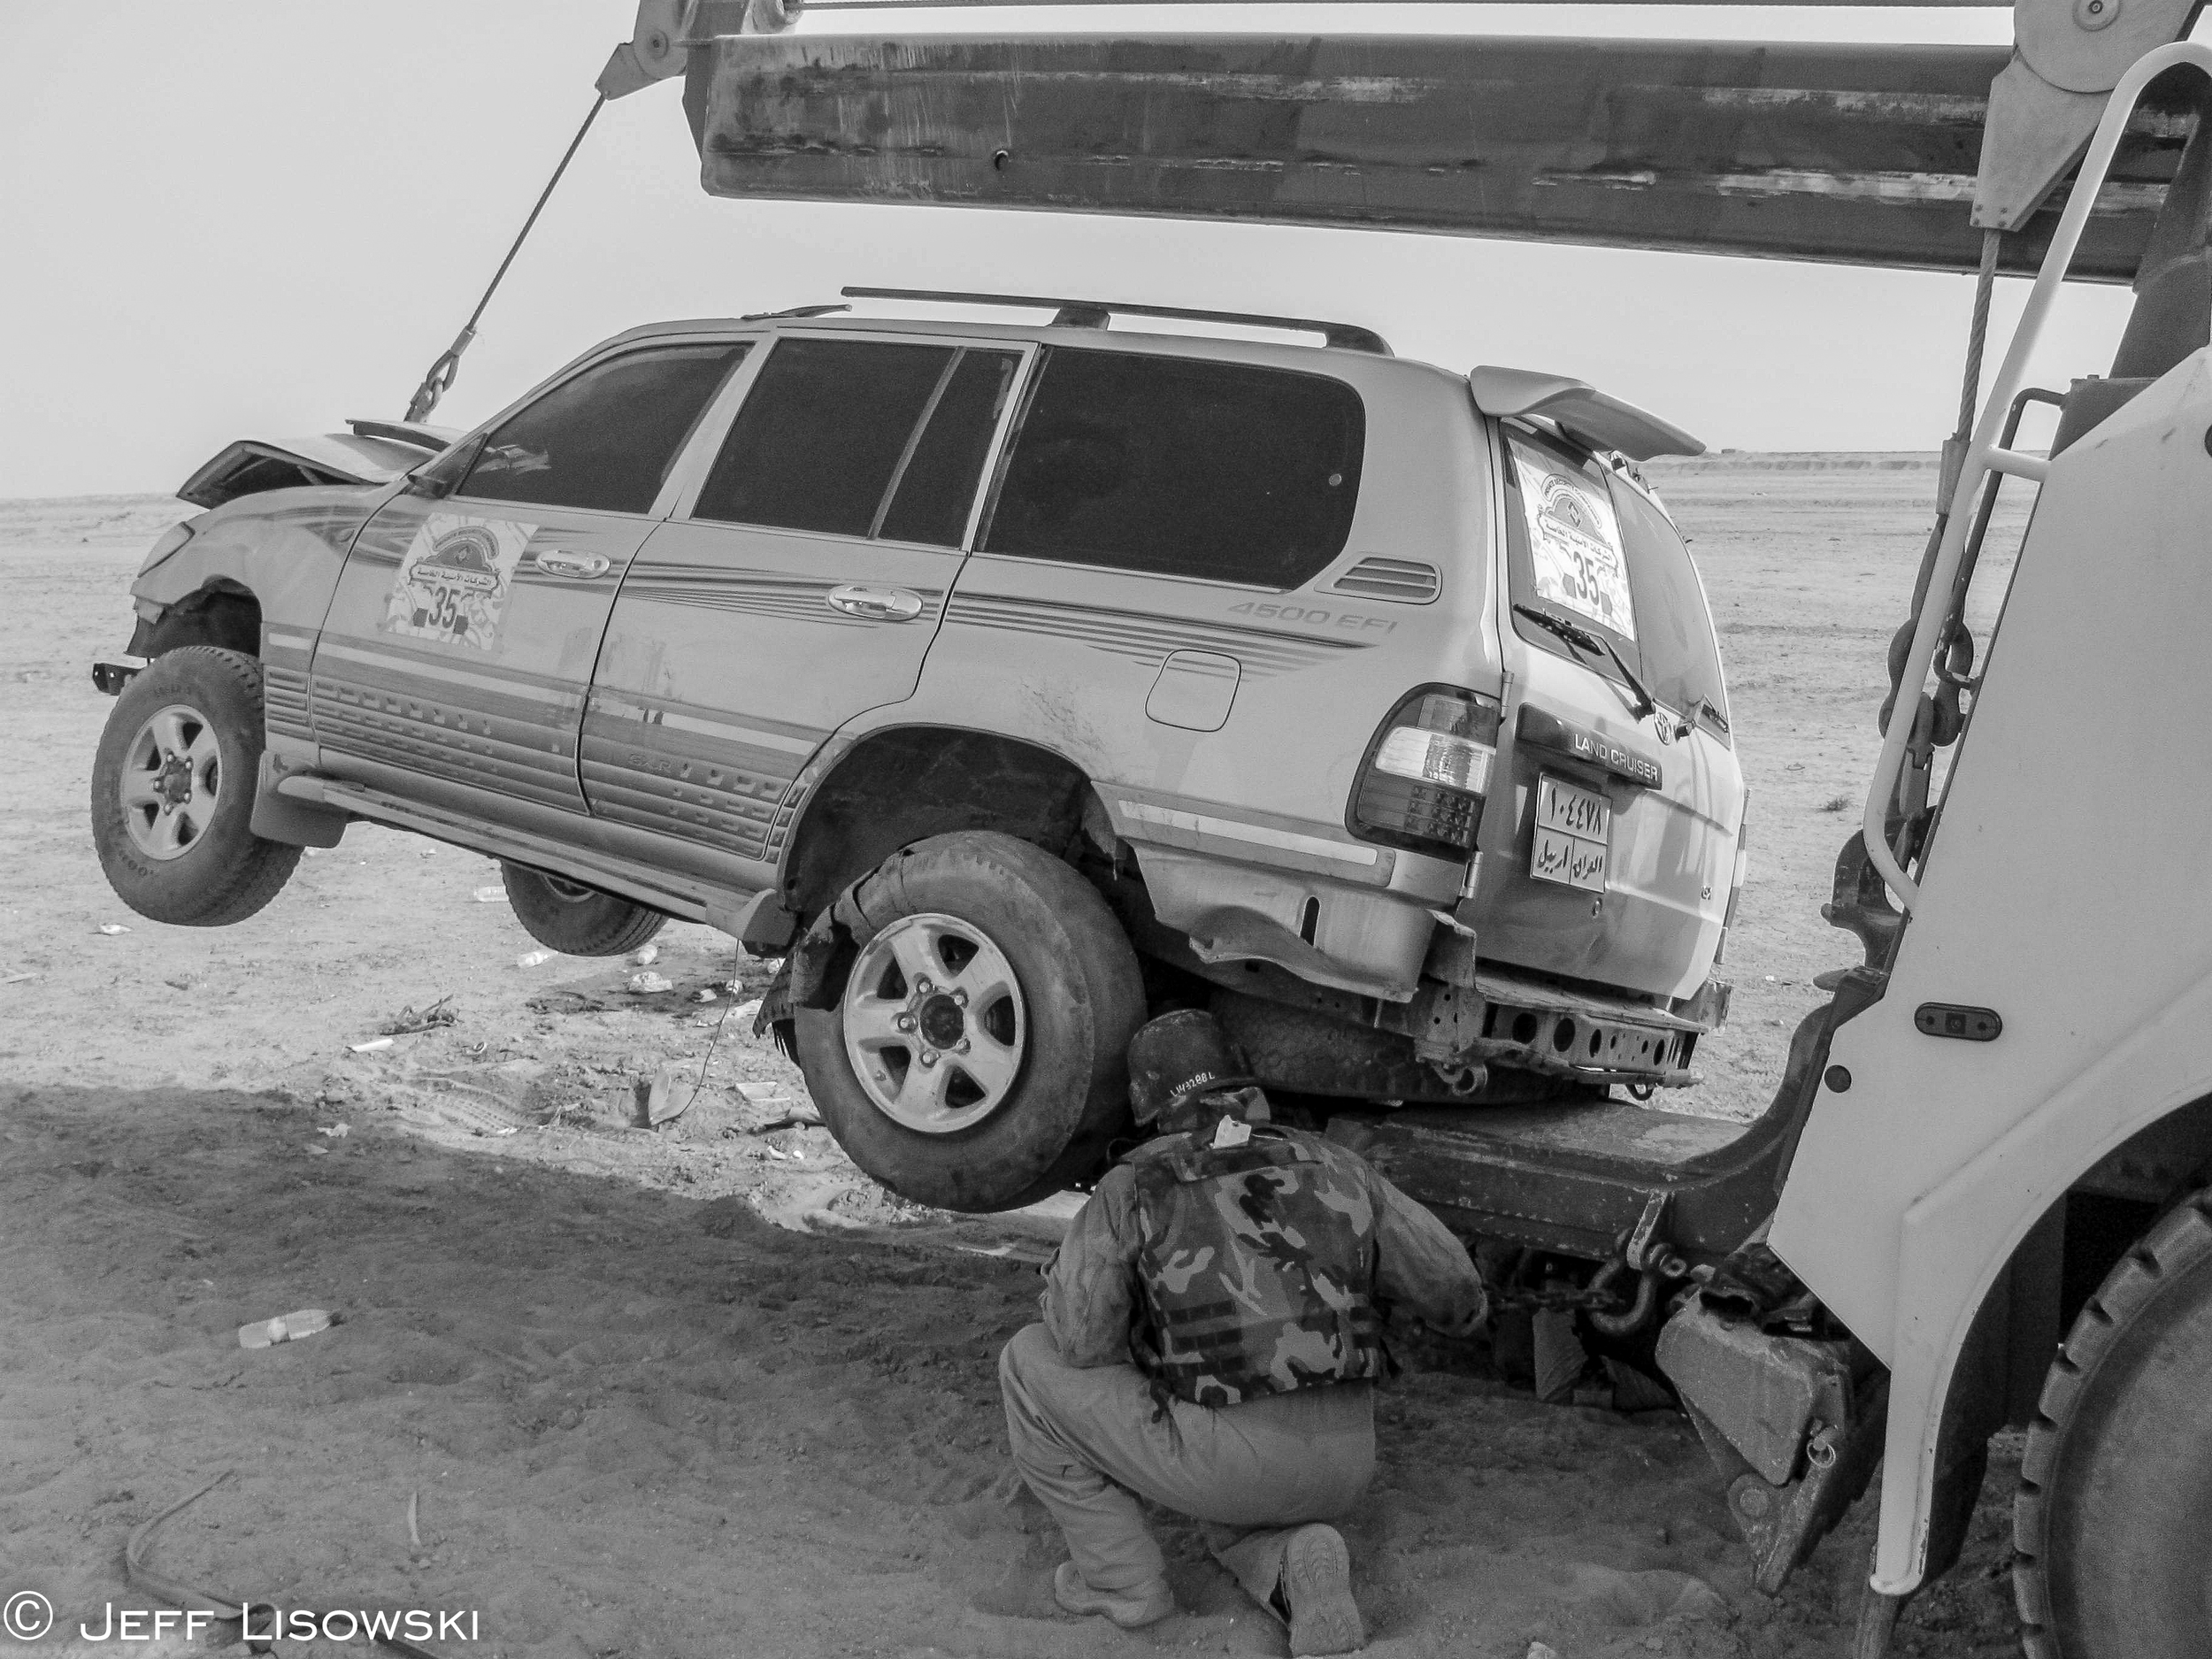 When the HET trailer was full and you got called to pick up more equipment- you improvised. Here a British security company's armored SUV is loaded onto the underreach of our EMPL wrecker. Hey, it worked.